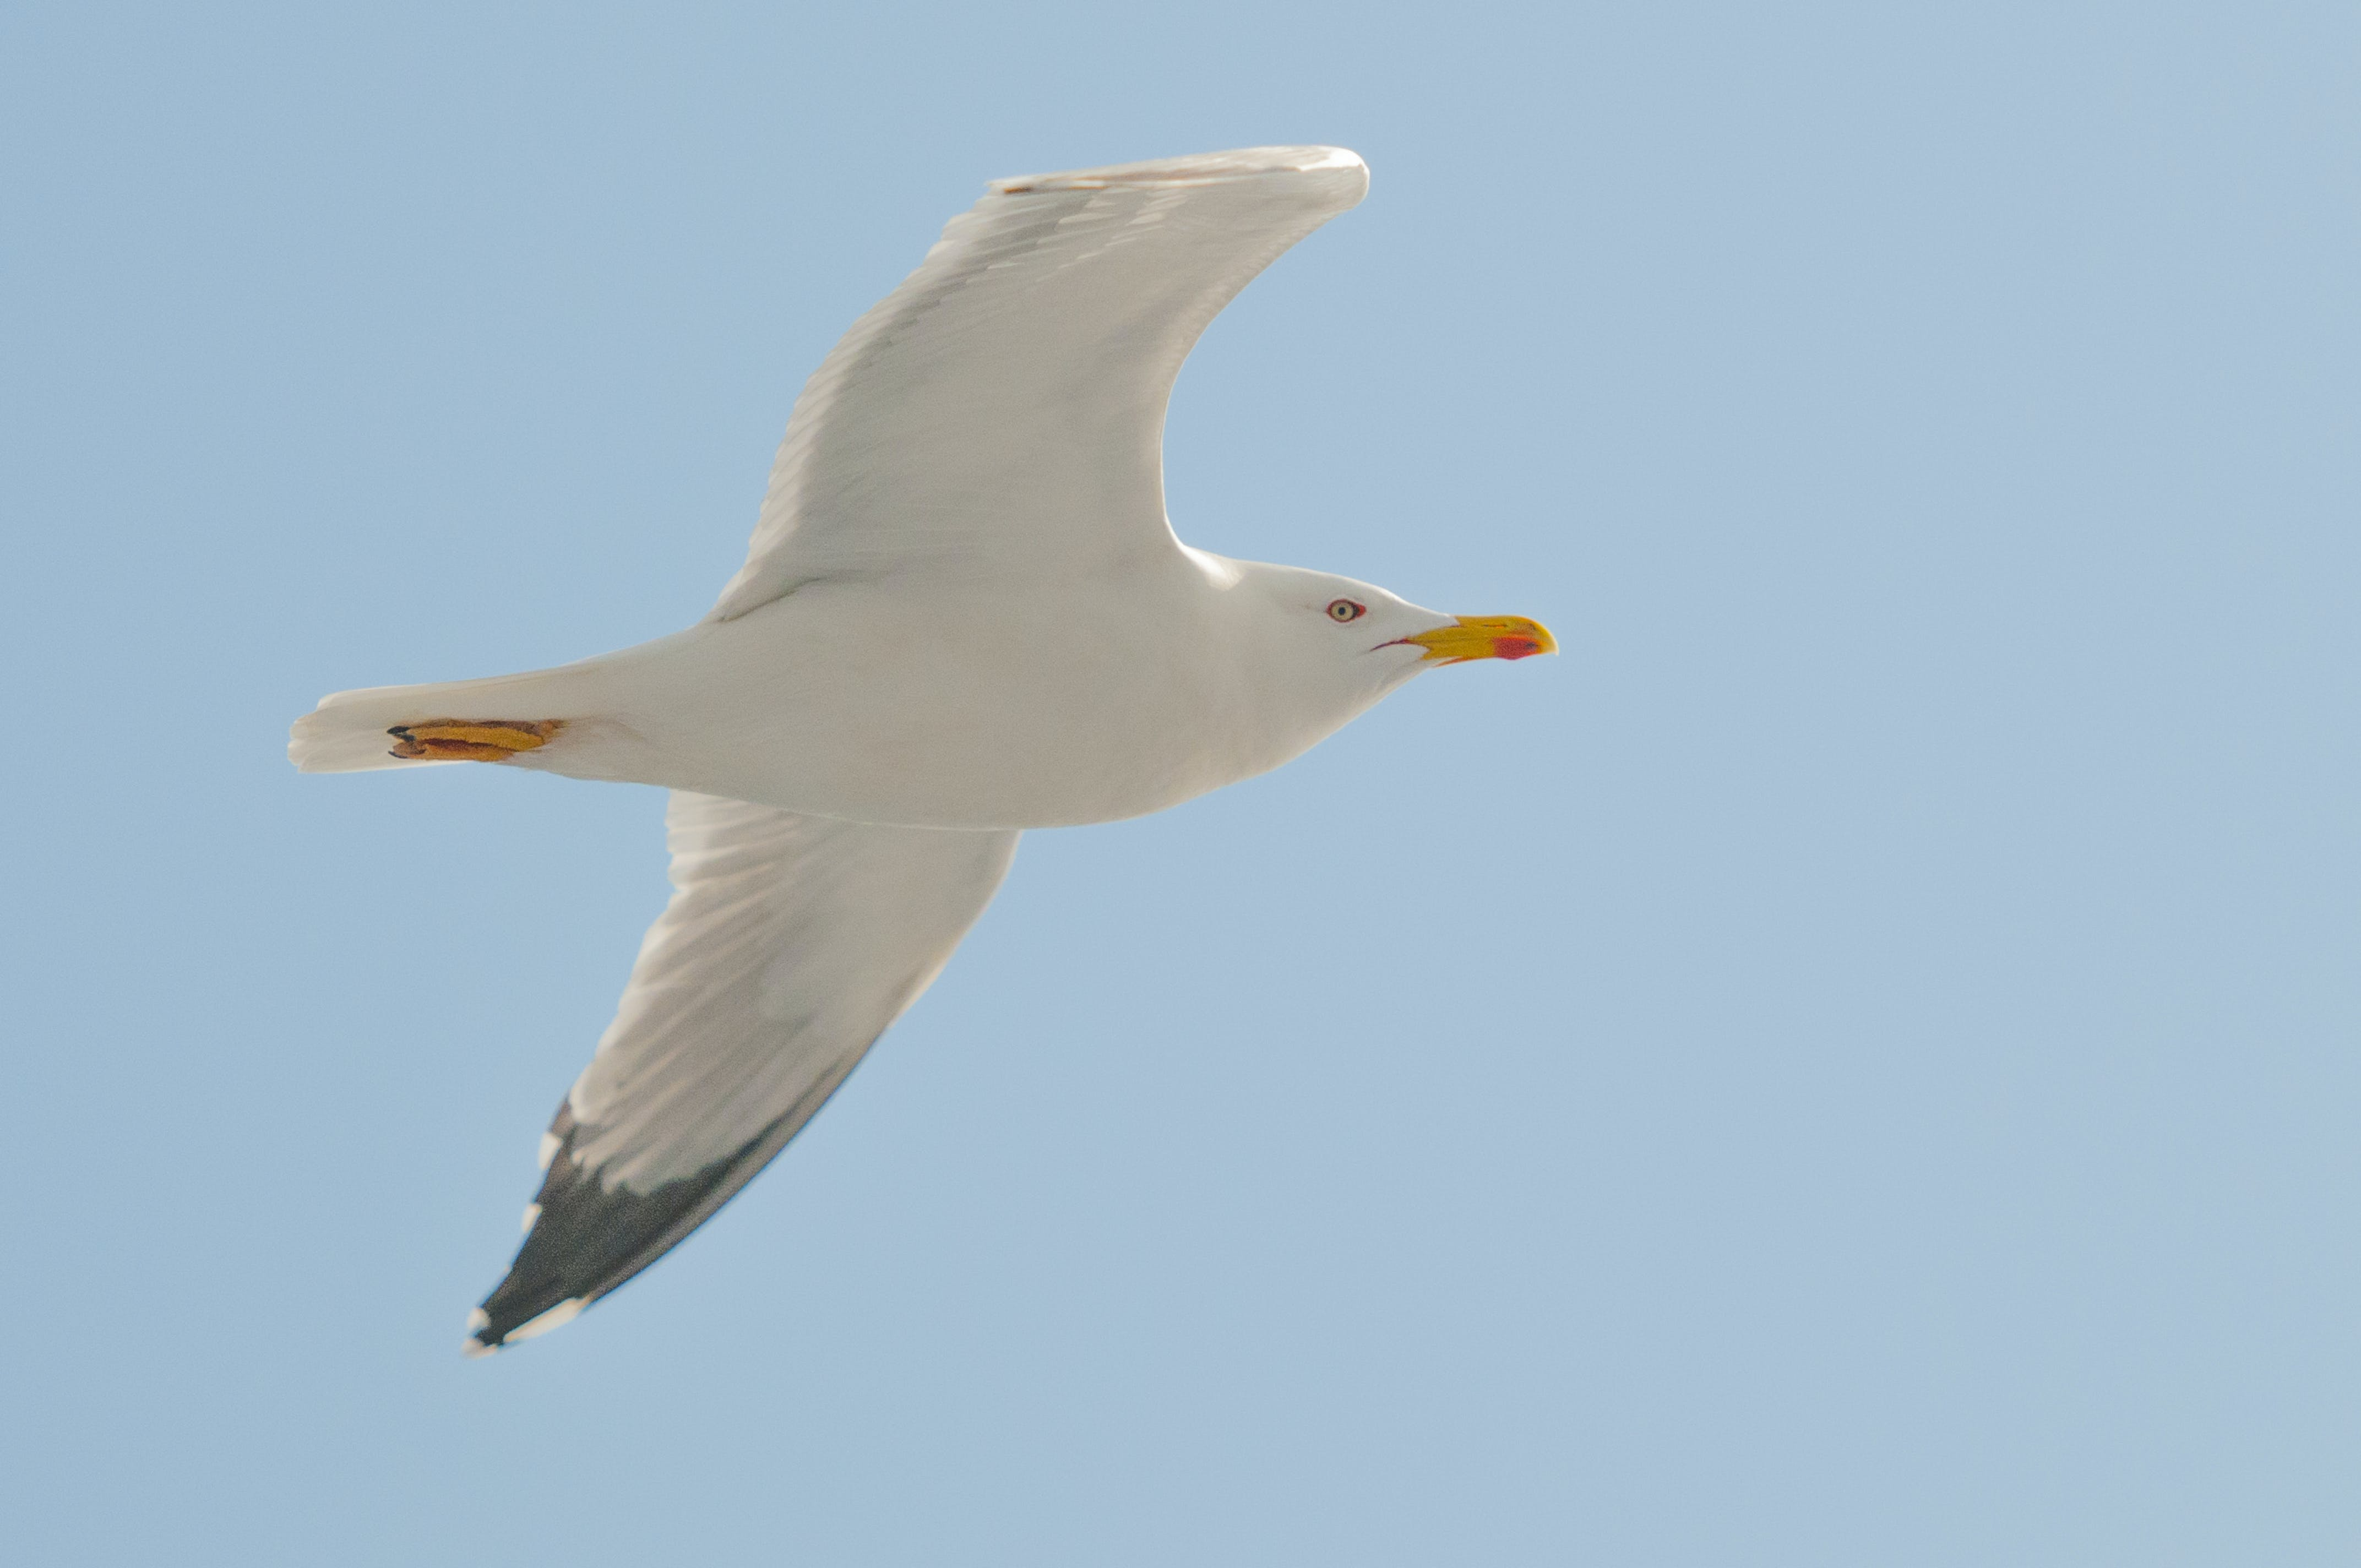 White Seagull Flying Under Clear Blue Sky